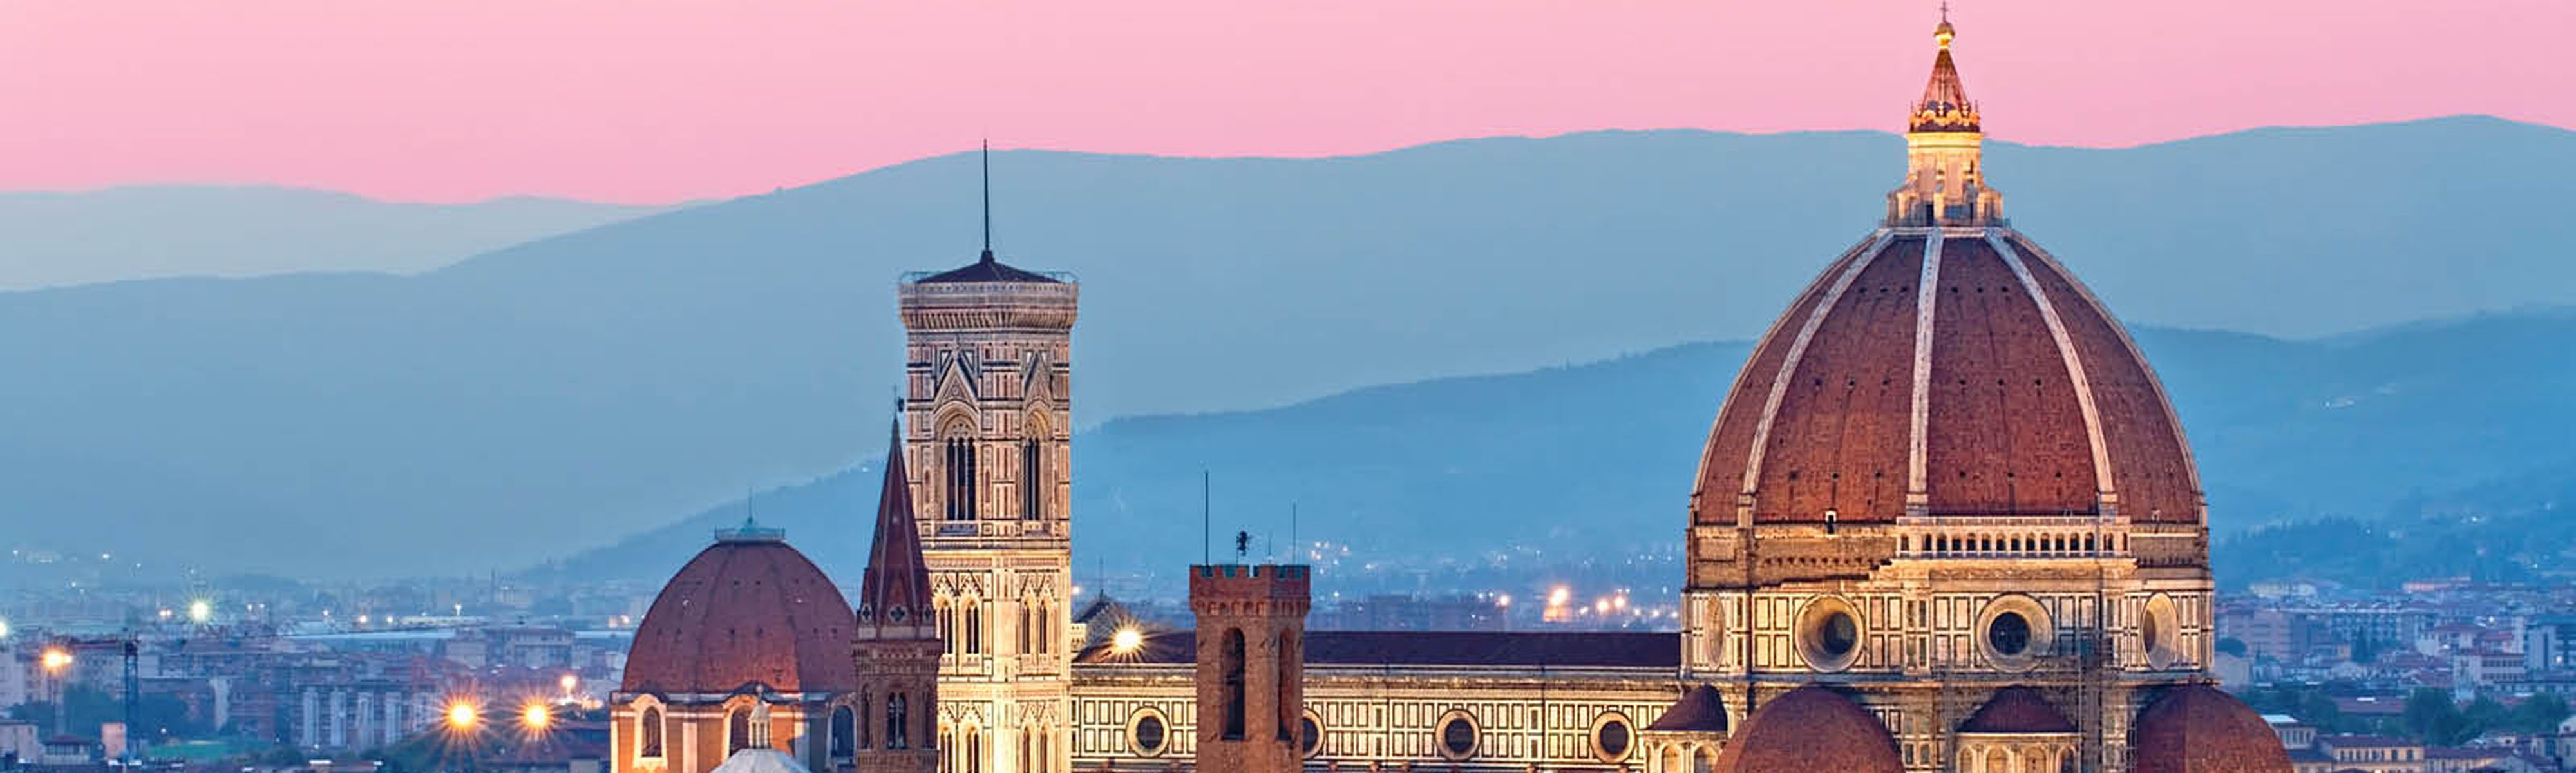 the top of the duomo lit up in florence at sunset